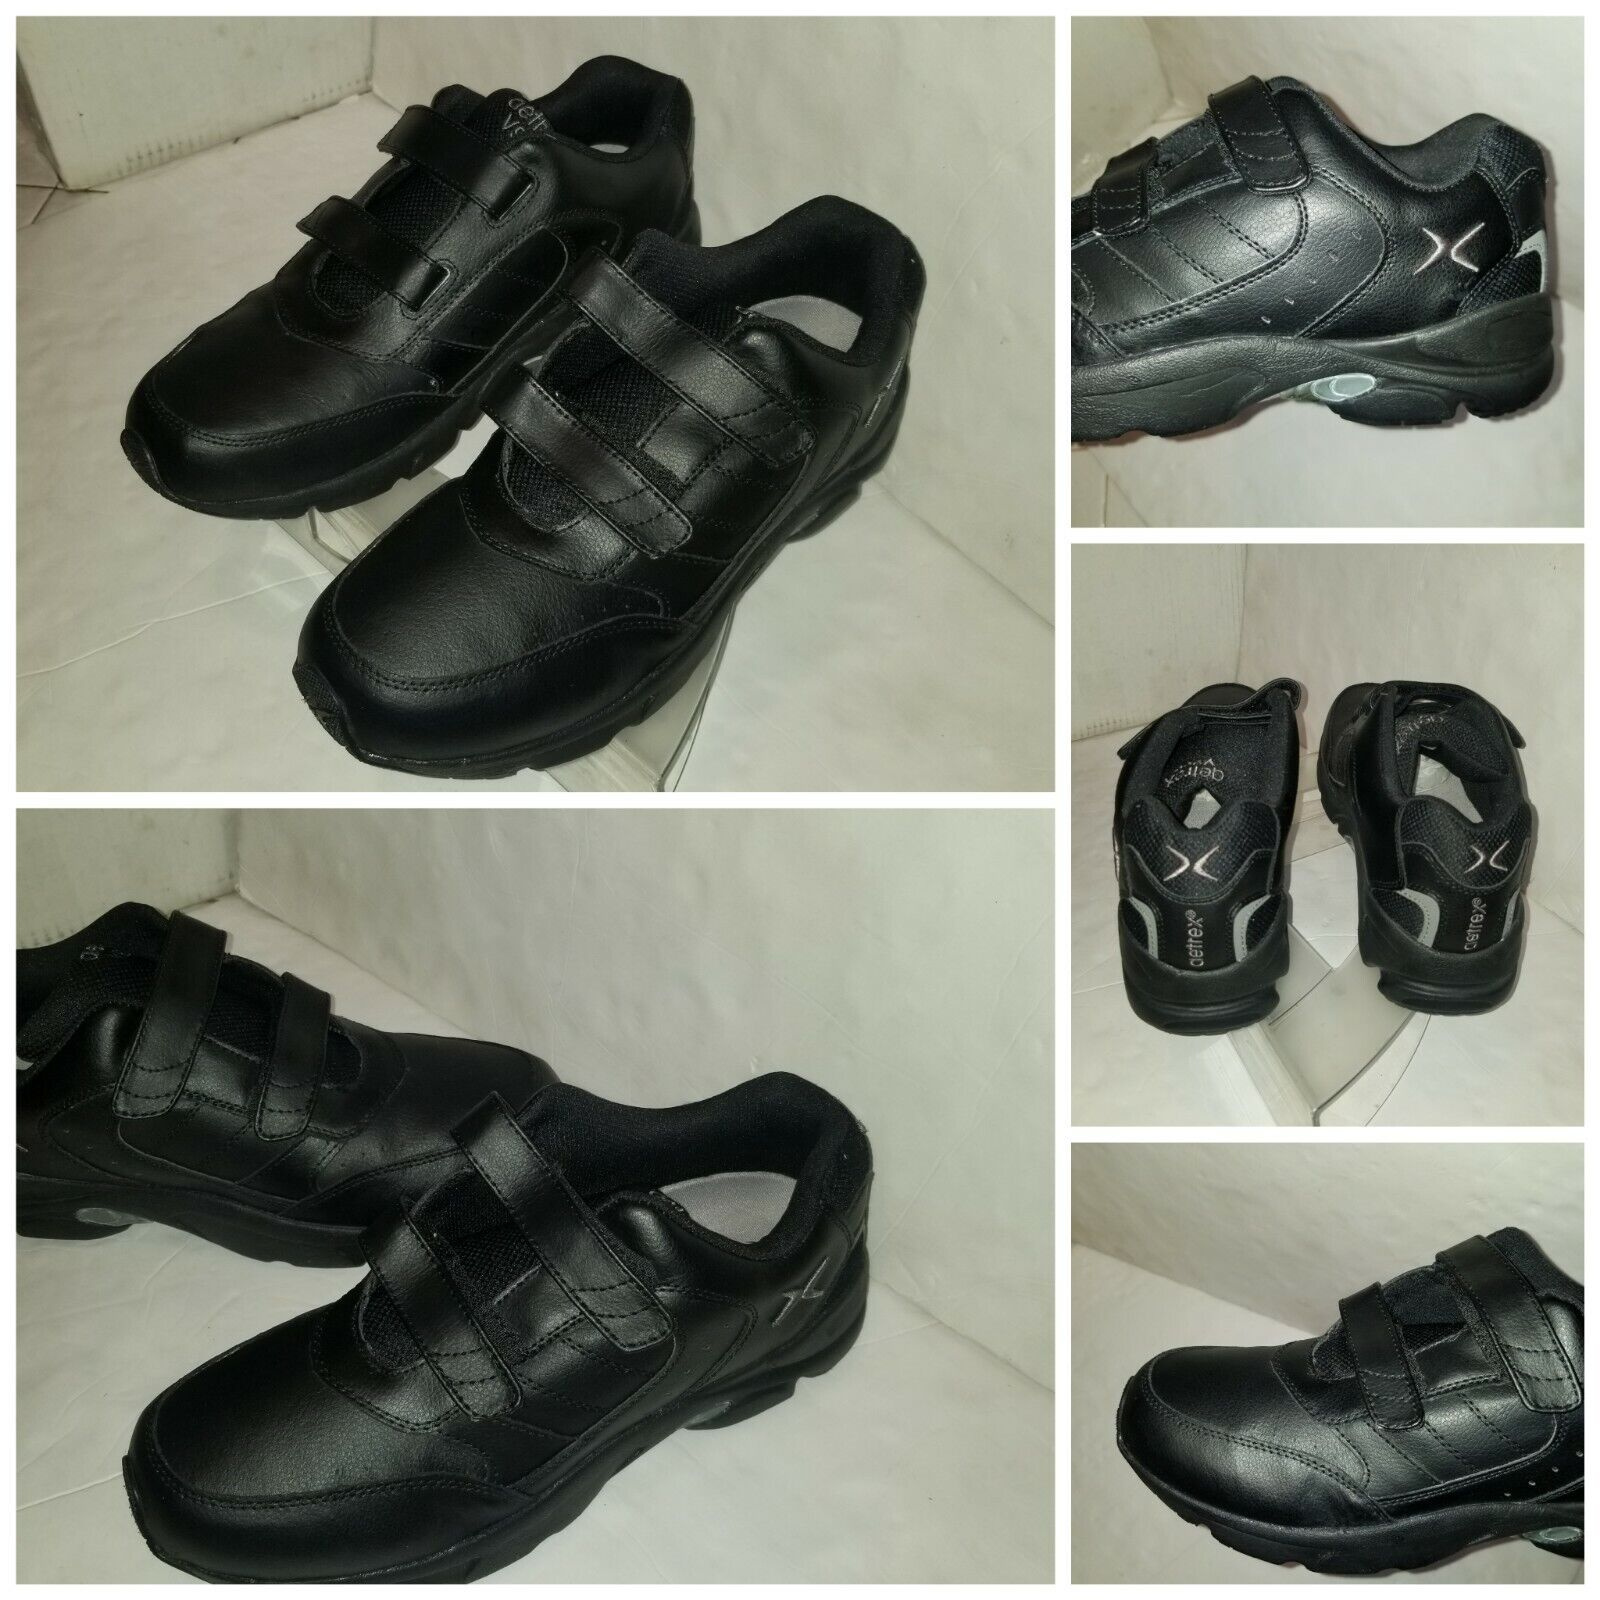 Aetrex V950 Therapeutic Walker Shoes Mens Size 11 X- Wide Double Strap Leather